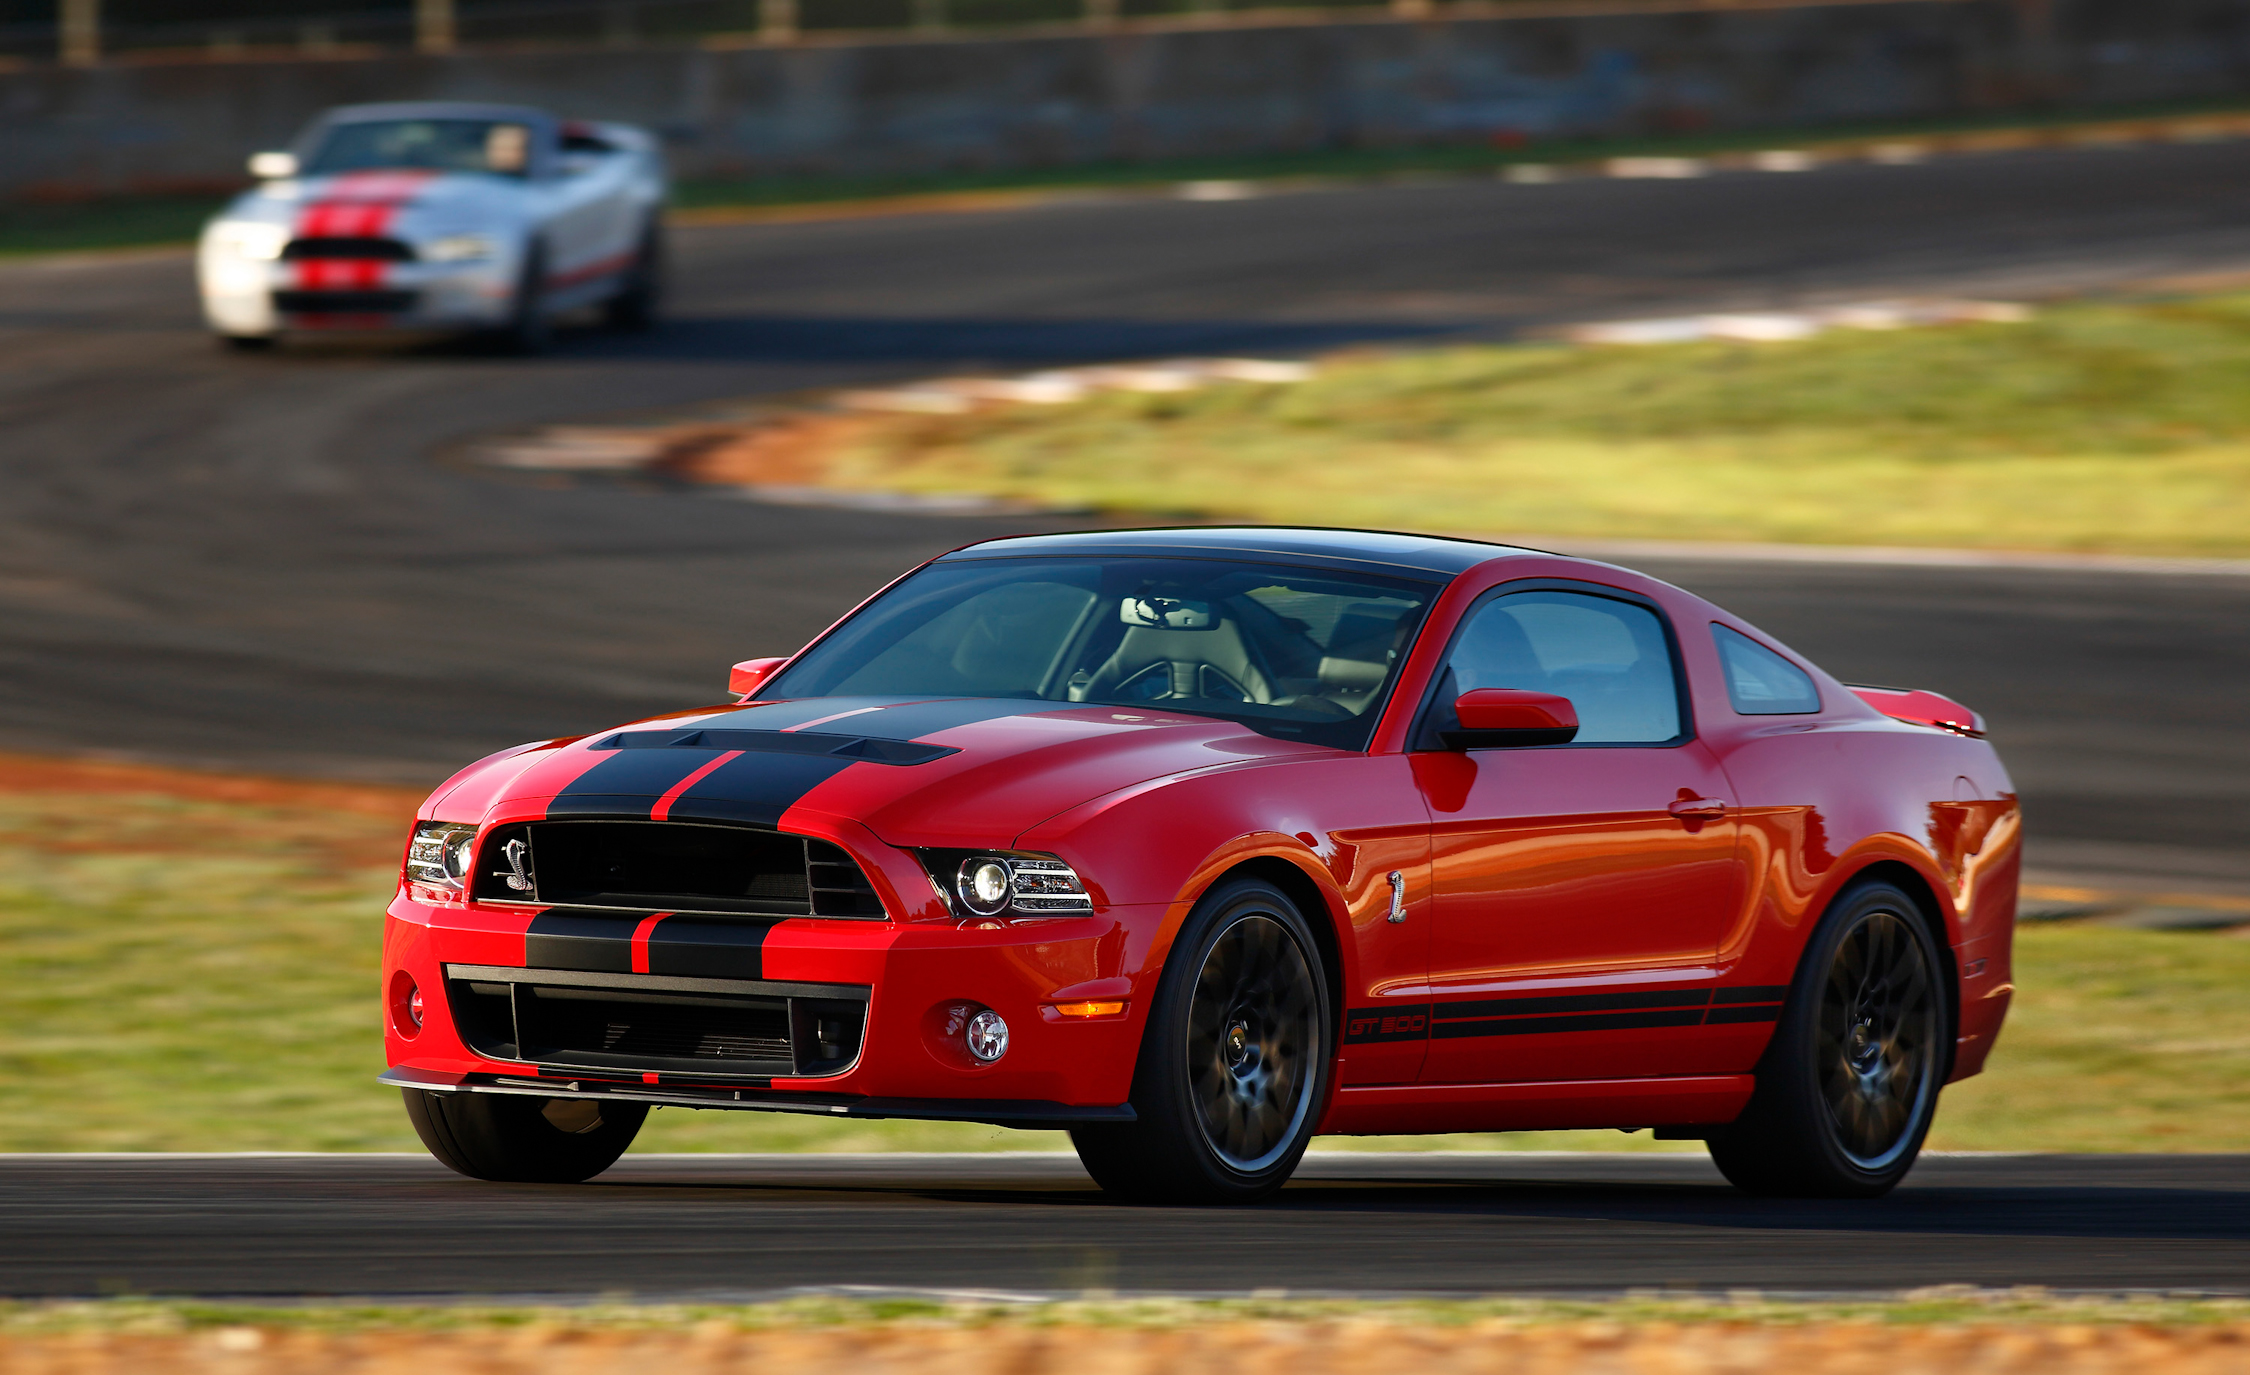 2013 Ford Mustang Shelby GT500 Red Test Drive Preview (View 47 of 47)